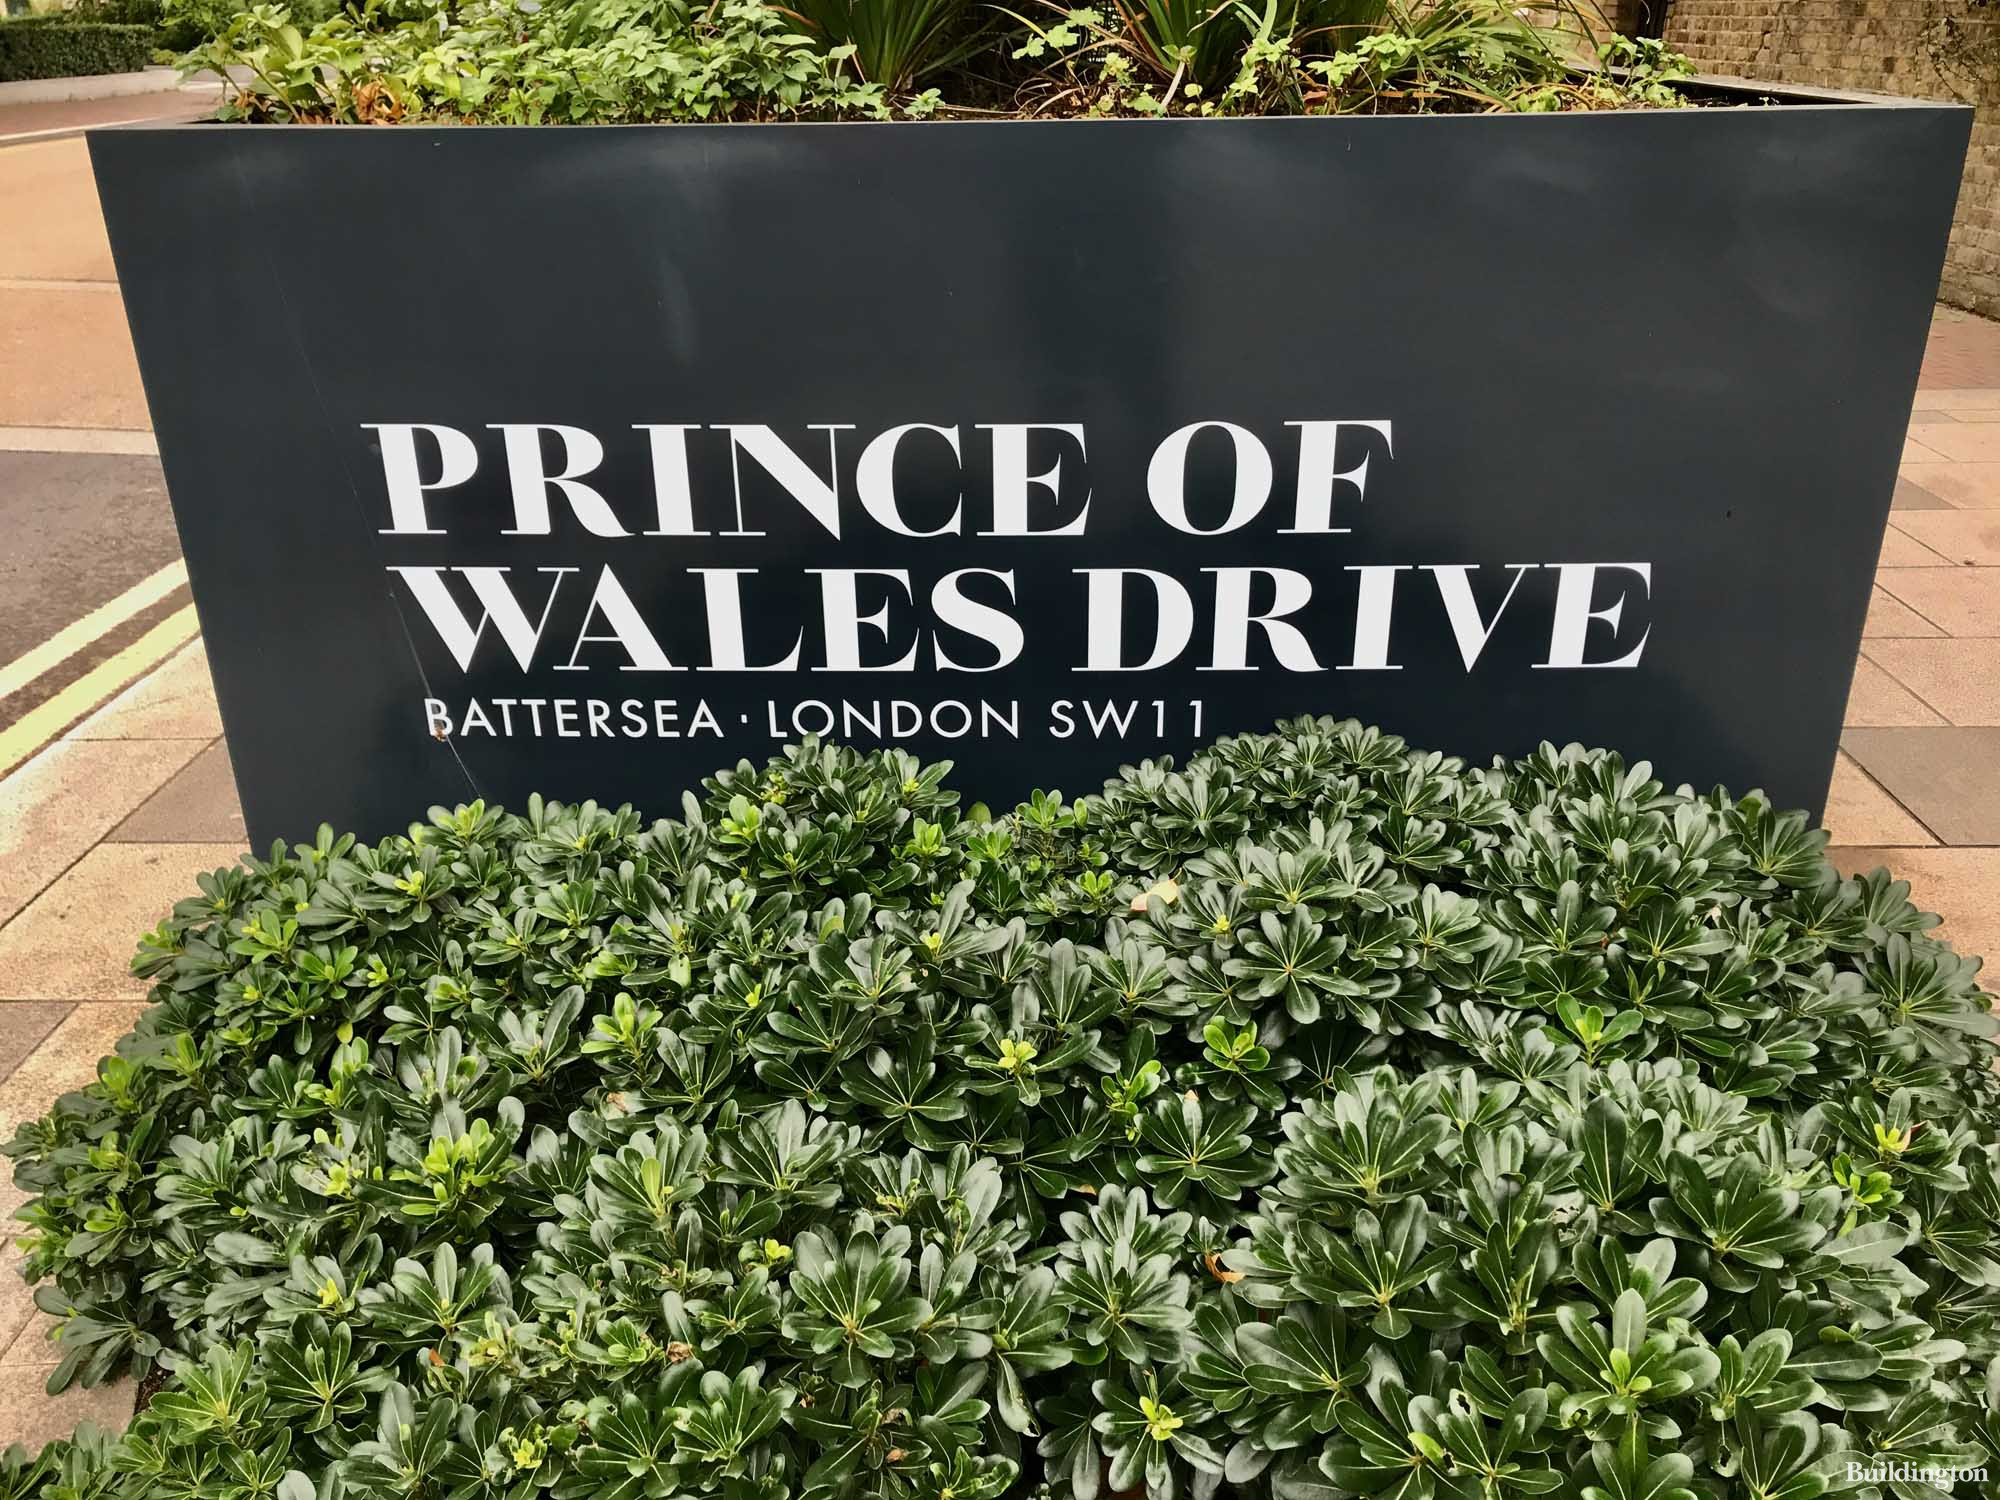 Prince of Wales Drive by St William development sign on the side of the road.